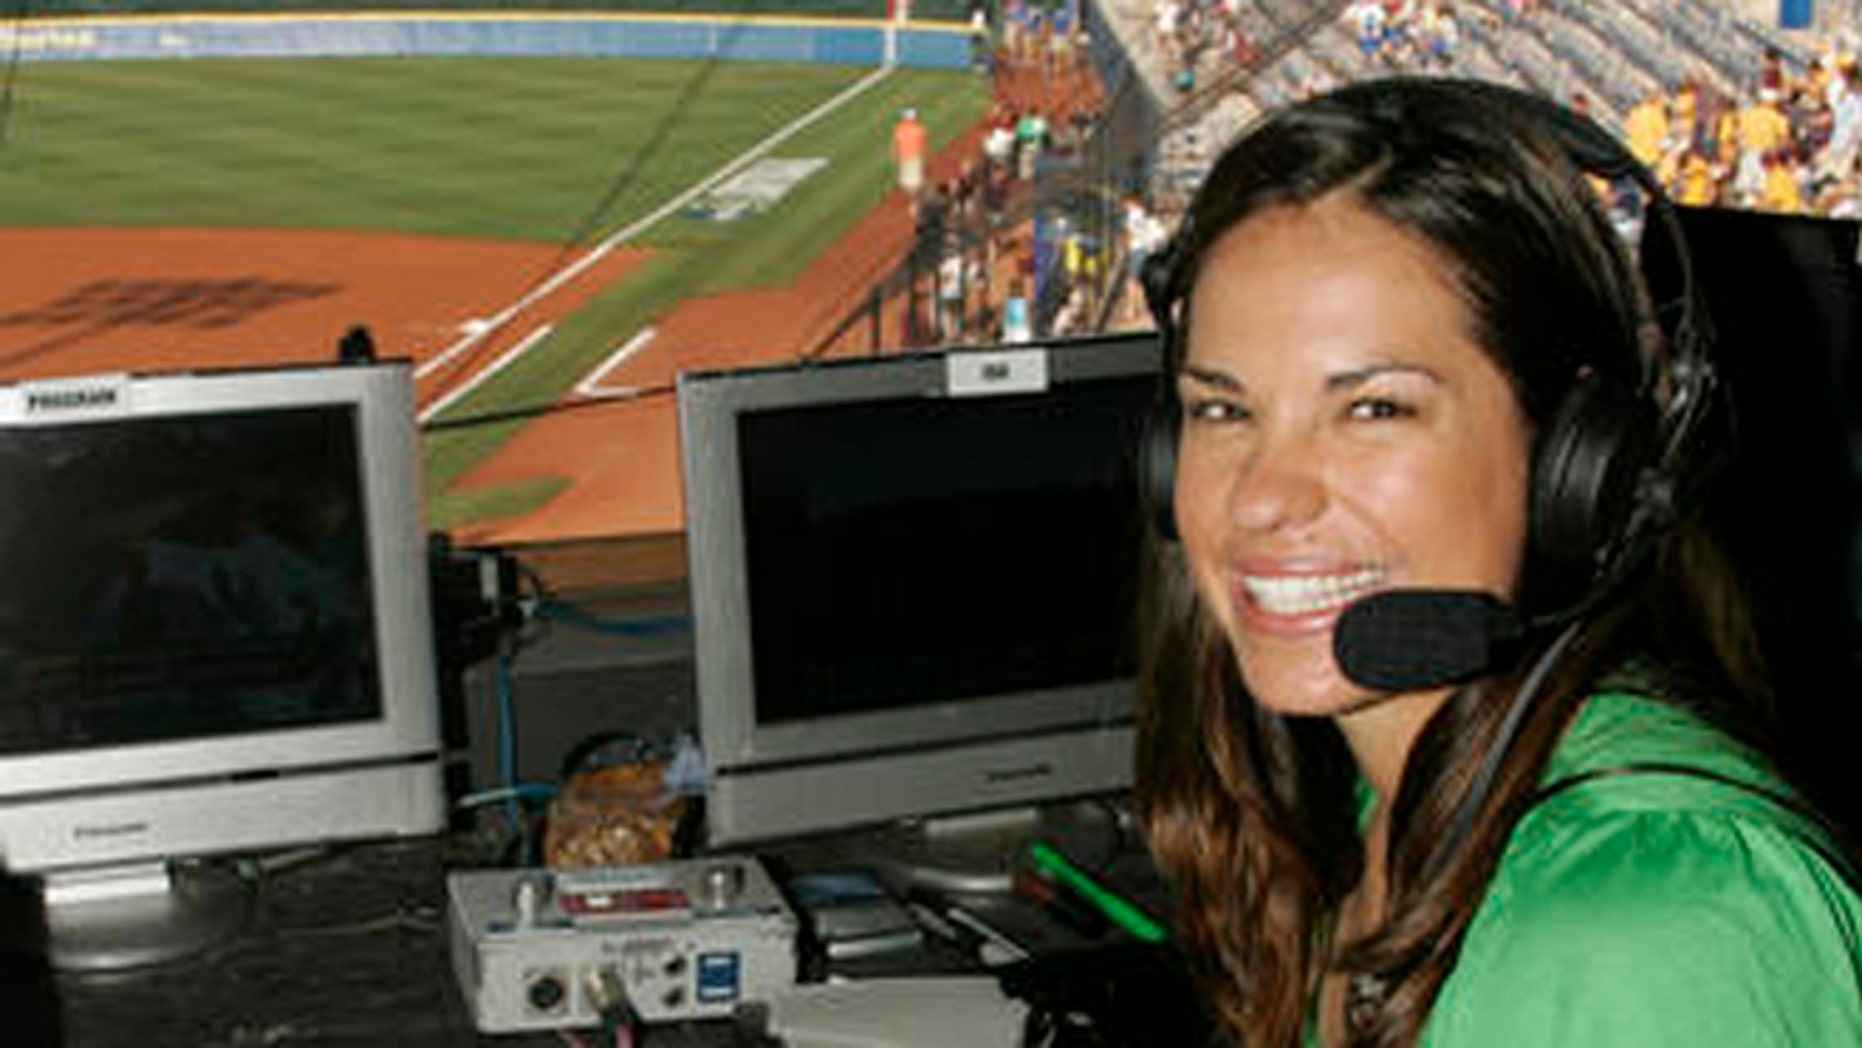 "FILE - In this May 29, 2009 file photo, USA softball player Jessica Mendoza poses for a photo in the ESPN broadcast booth at the Women's College World Series in Oklahoma City.  Mendoza chatted up Kyle Schwarber, broke down pitcher's tendencies and dealt with social media criticism in her historic first full season covering baseball for ESPN. Mendoza recently shuttled between Cleveland and Chicago, giving World Series updates eight times a day for ""Baseball Tonight"" and ""Sports Center.""(AP Photo)"